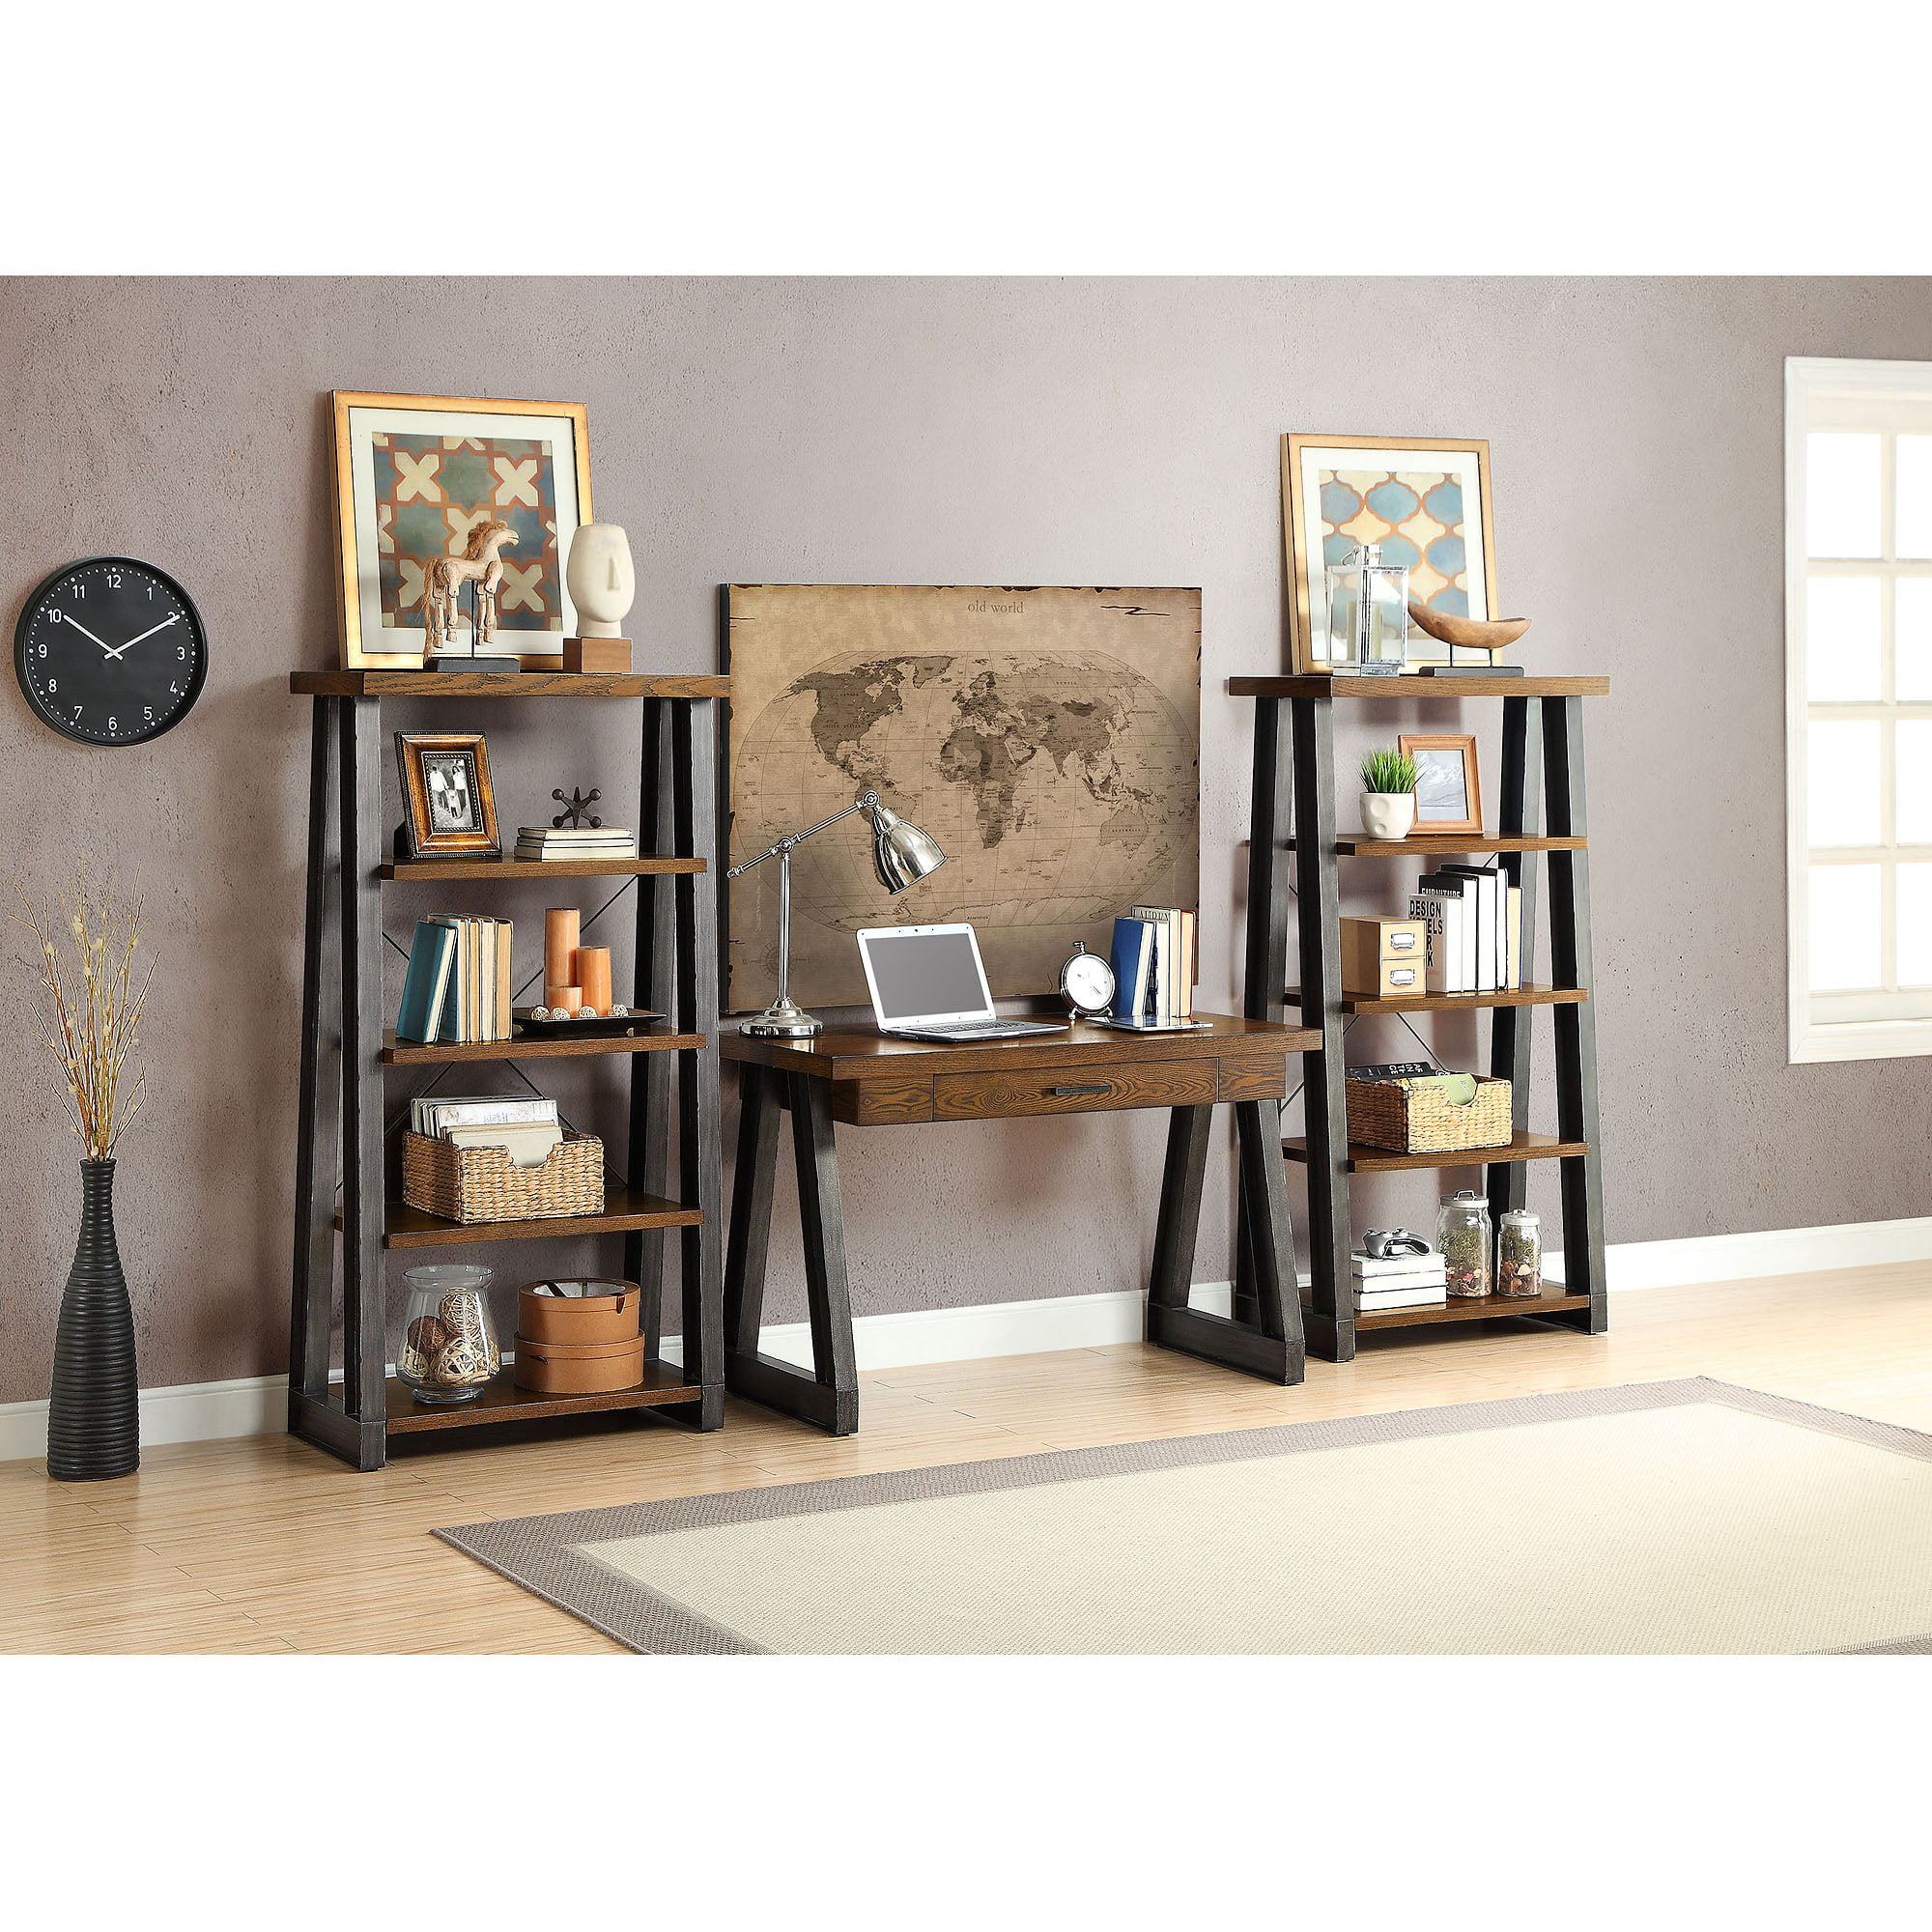 Better Homes and Gardens Mercer 5 Shelf Tower Vintage Oak